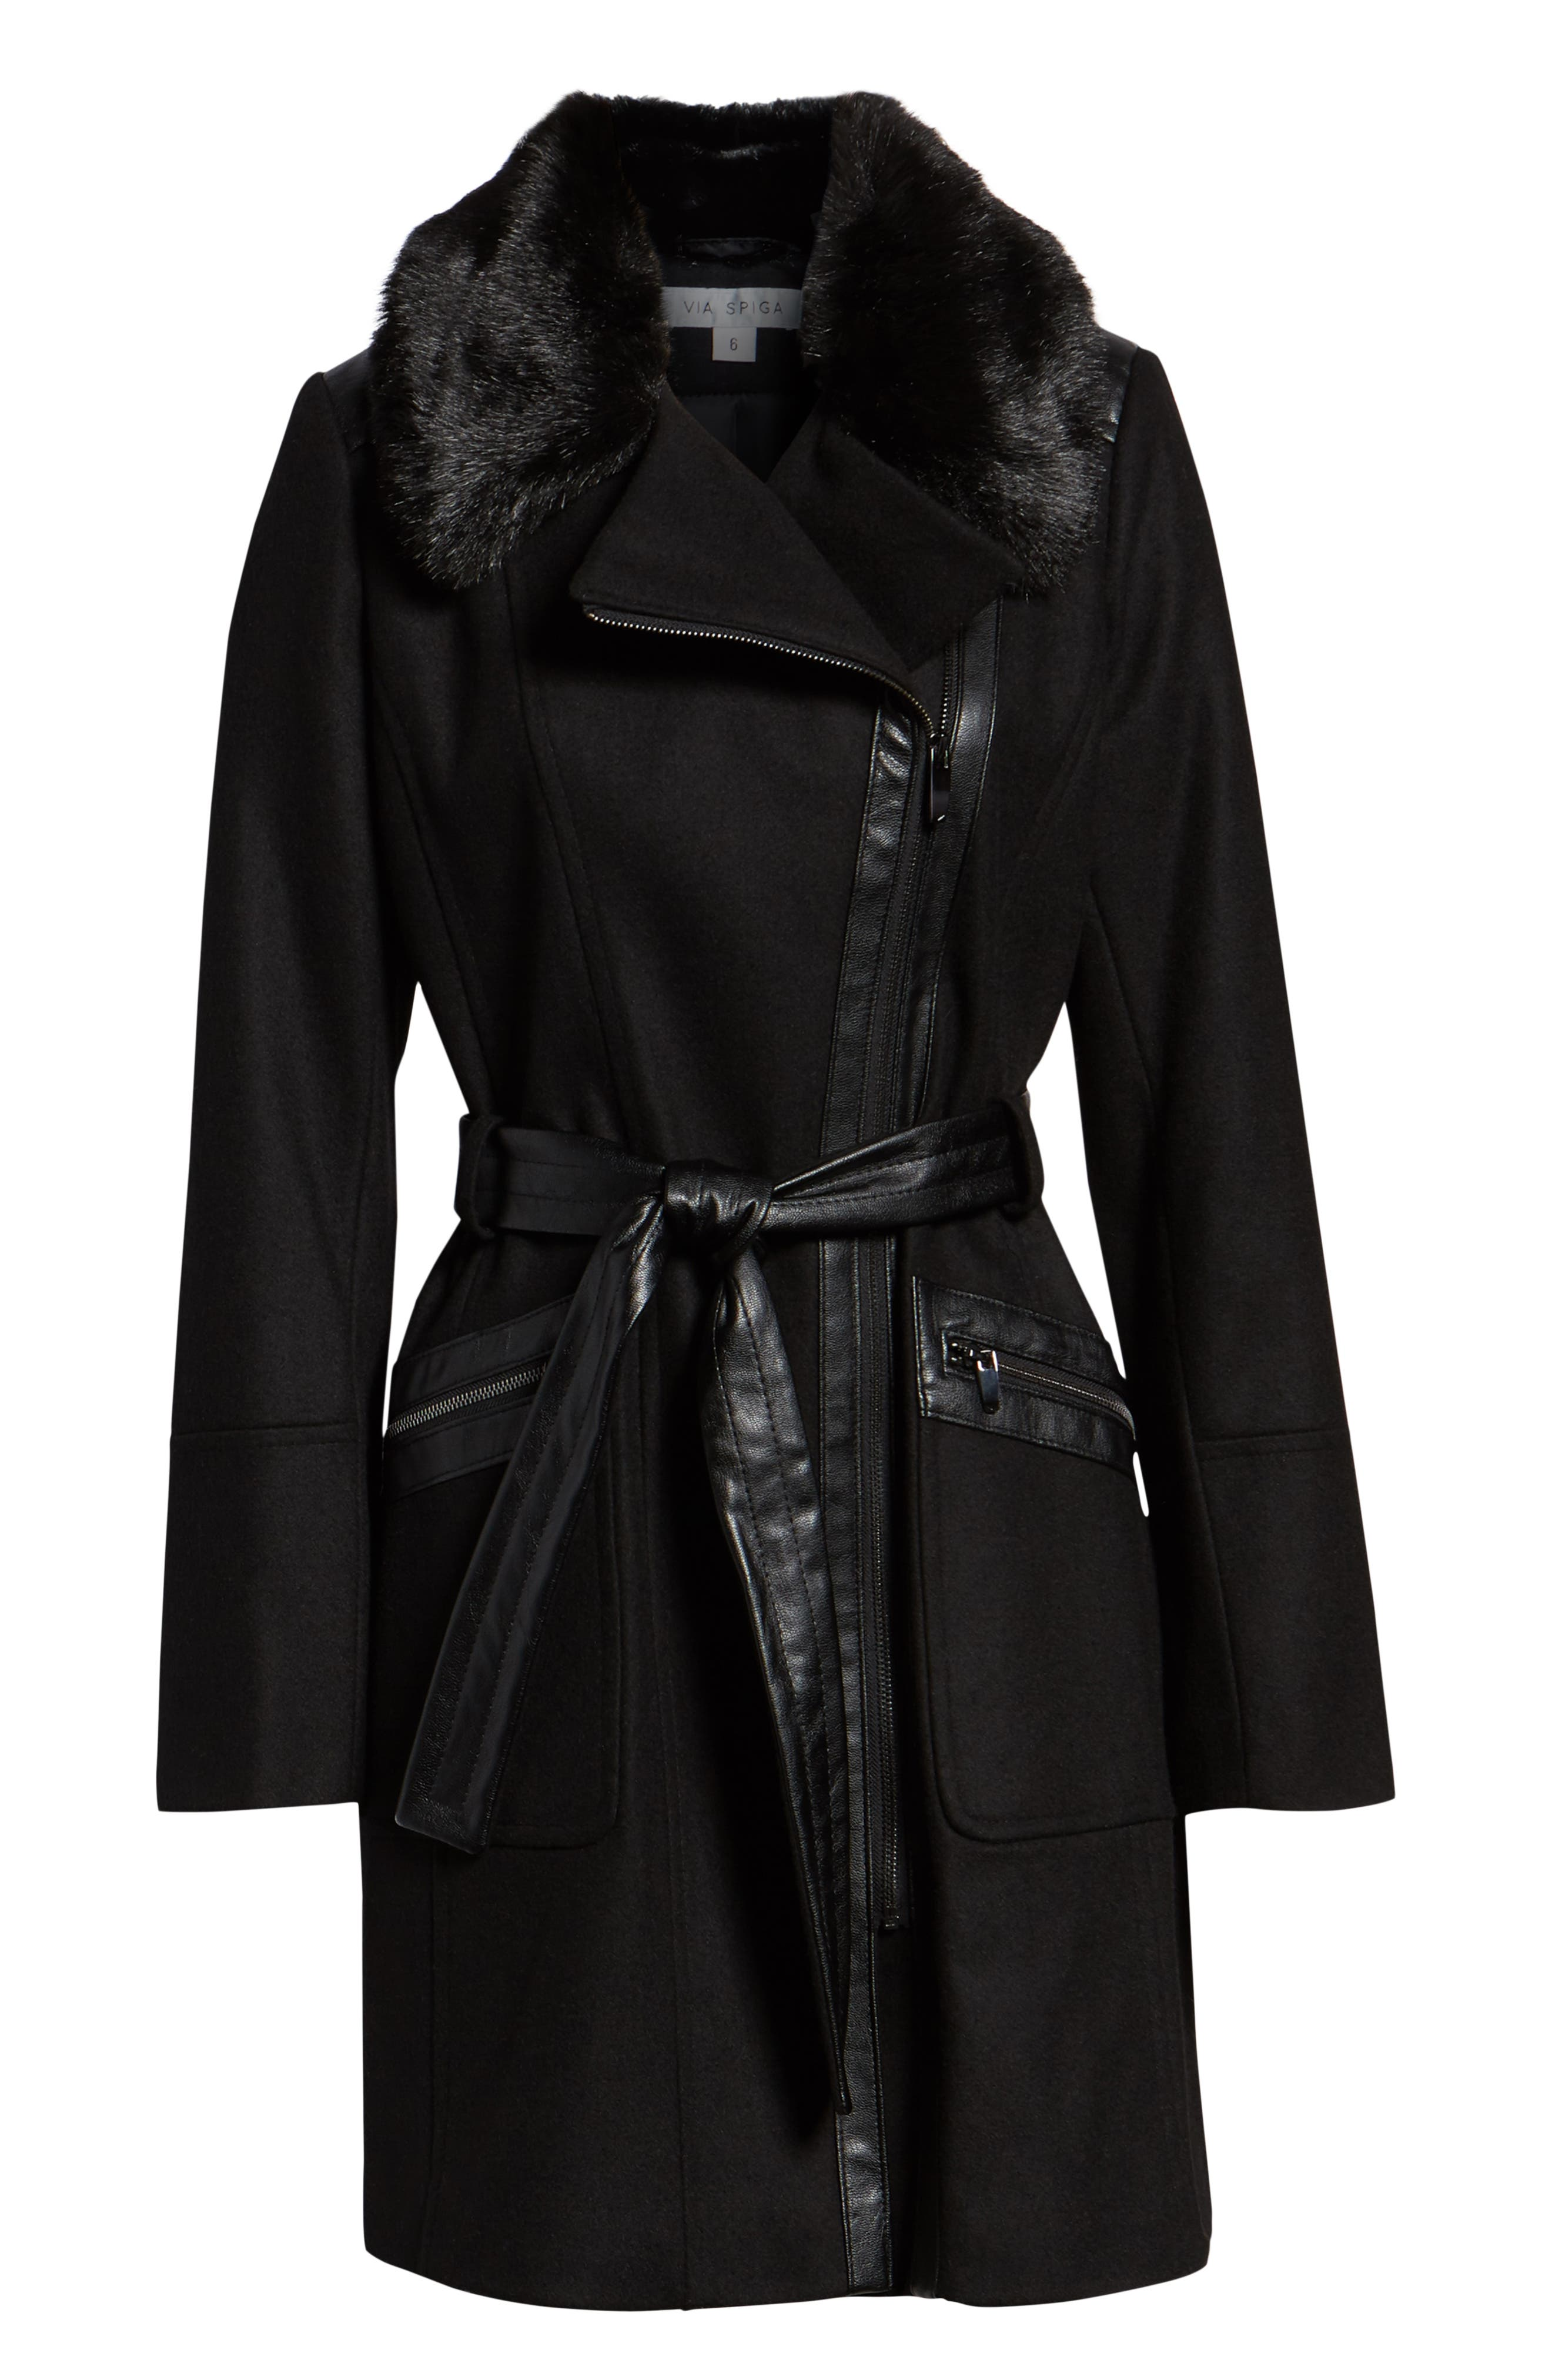 VIA SPIGA, Faux Fur Trim Belted Jacket, Alternate thumbnail 6, color, BLACK